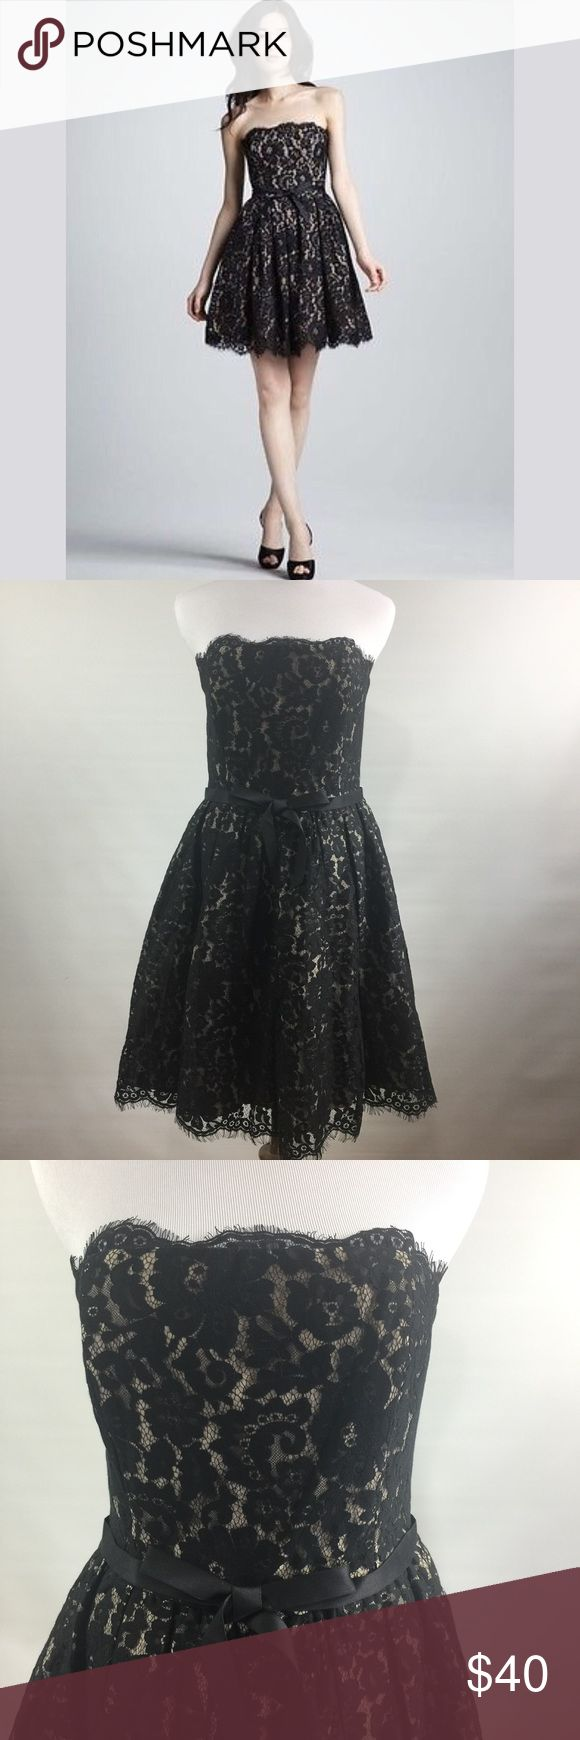 ROBERT RODRIGUEZ NEIMAN MARCUS FOR TARGET DRESS NWT black and taupe lace dress. Robert Rodriguez Dresses Midi